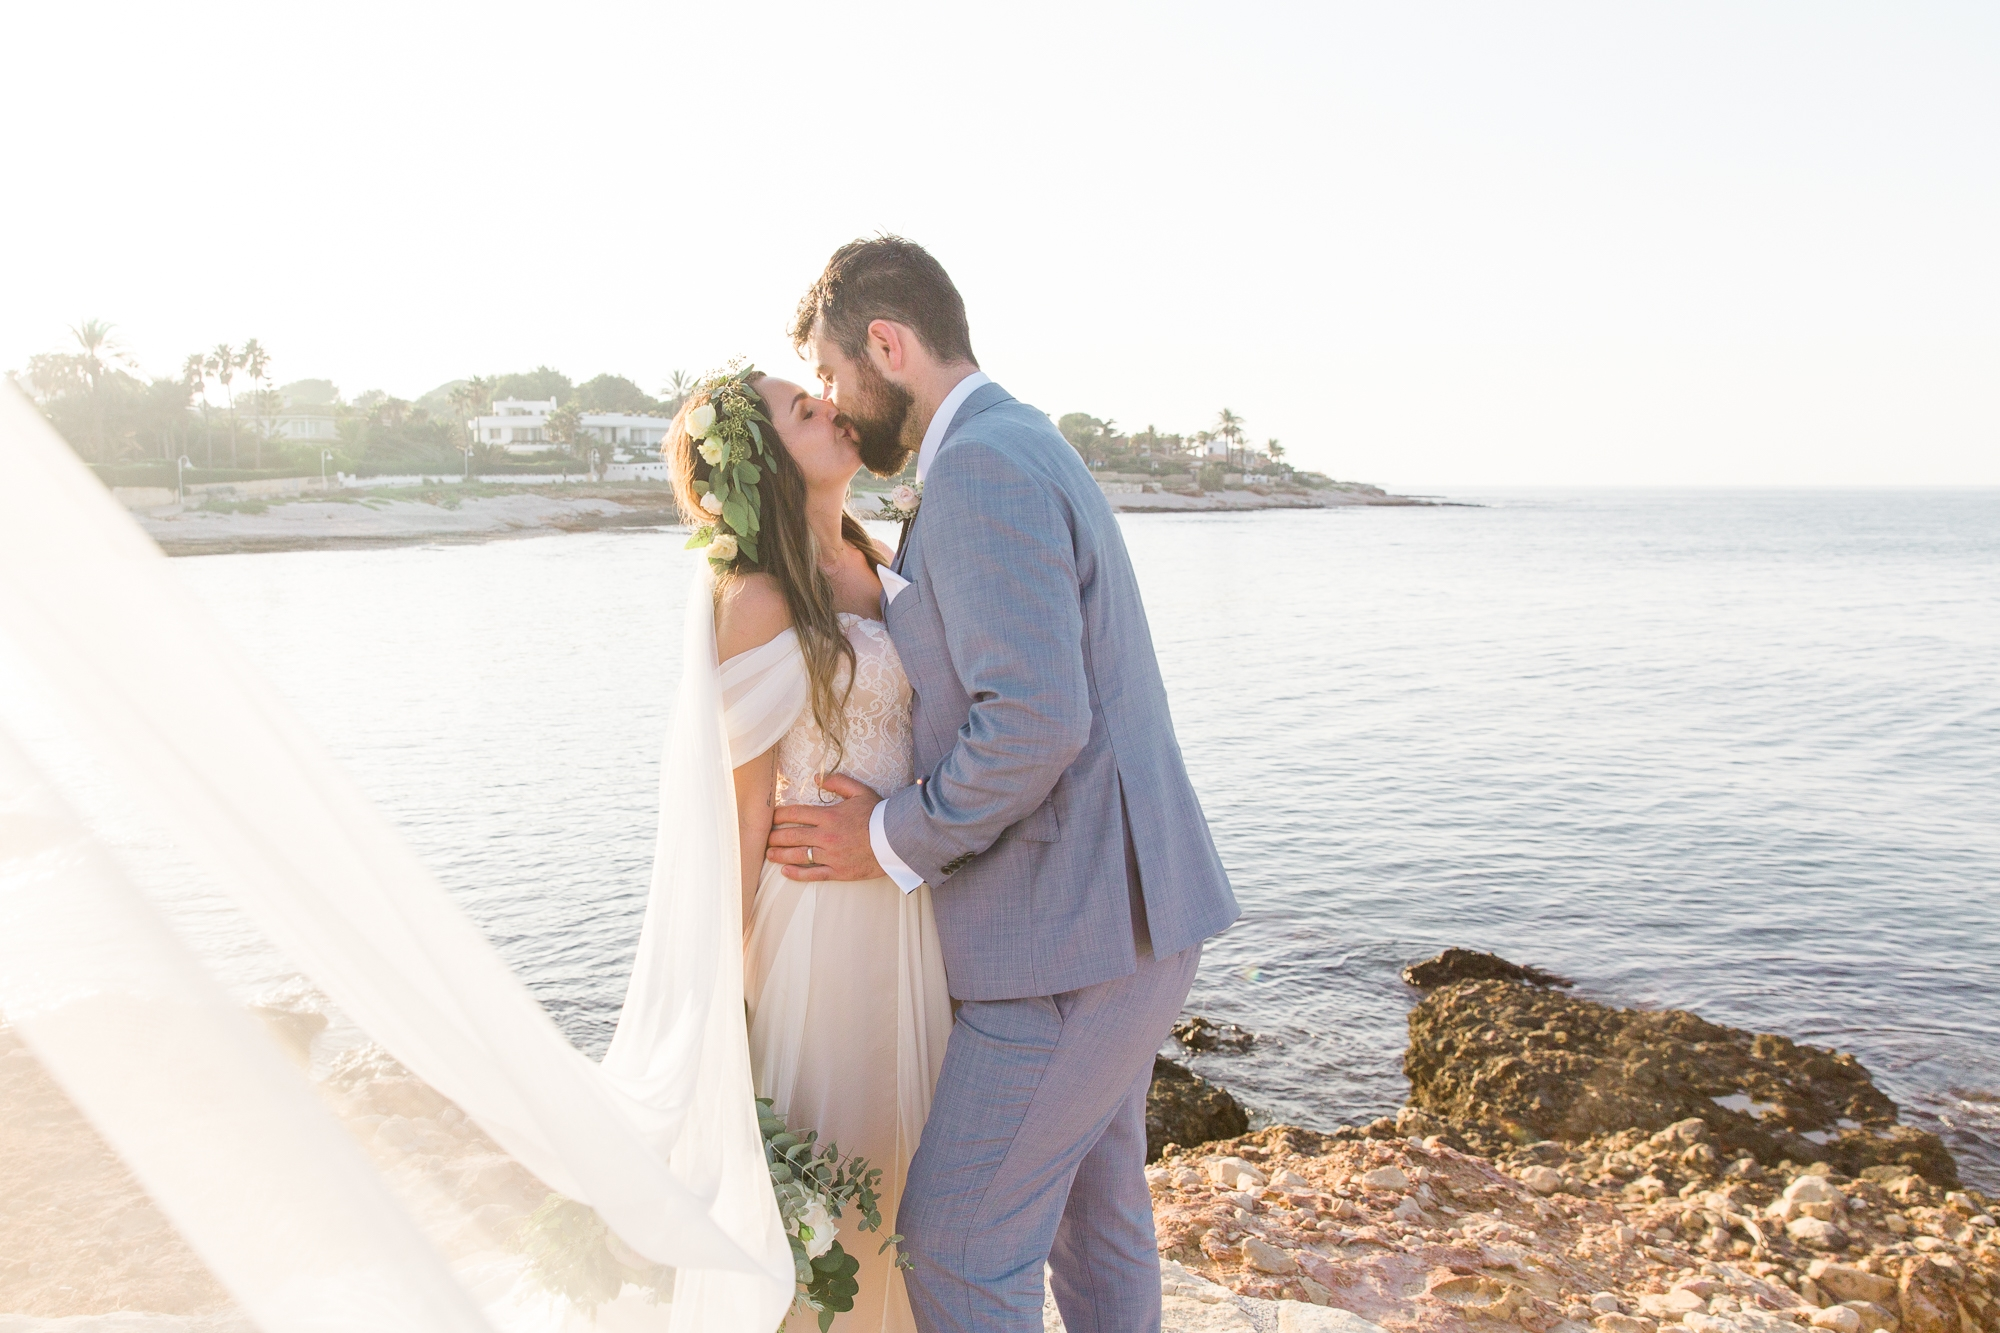 sunlight catches the brides veil as she kisses her husband by the sea in Spain